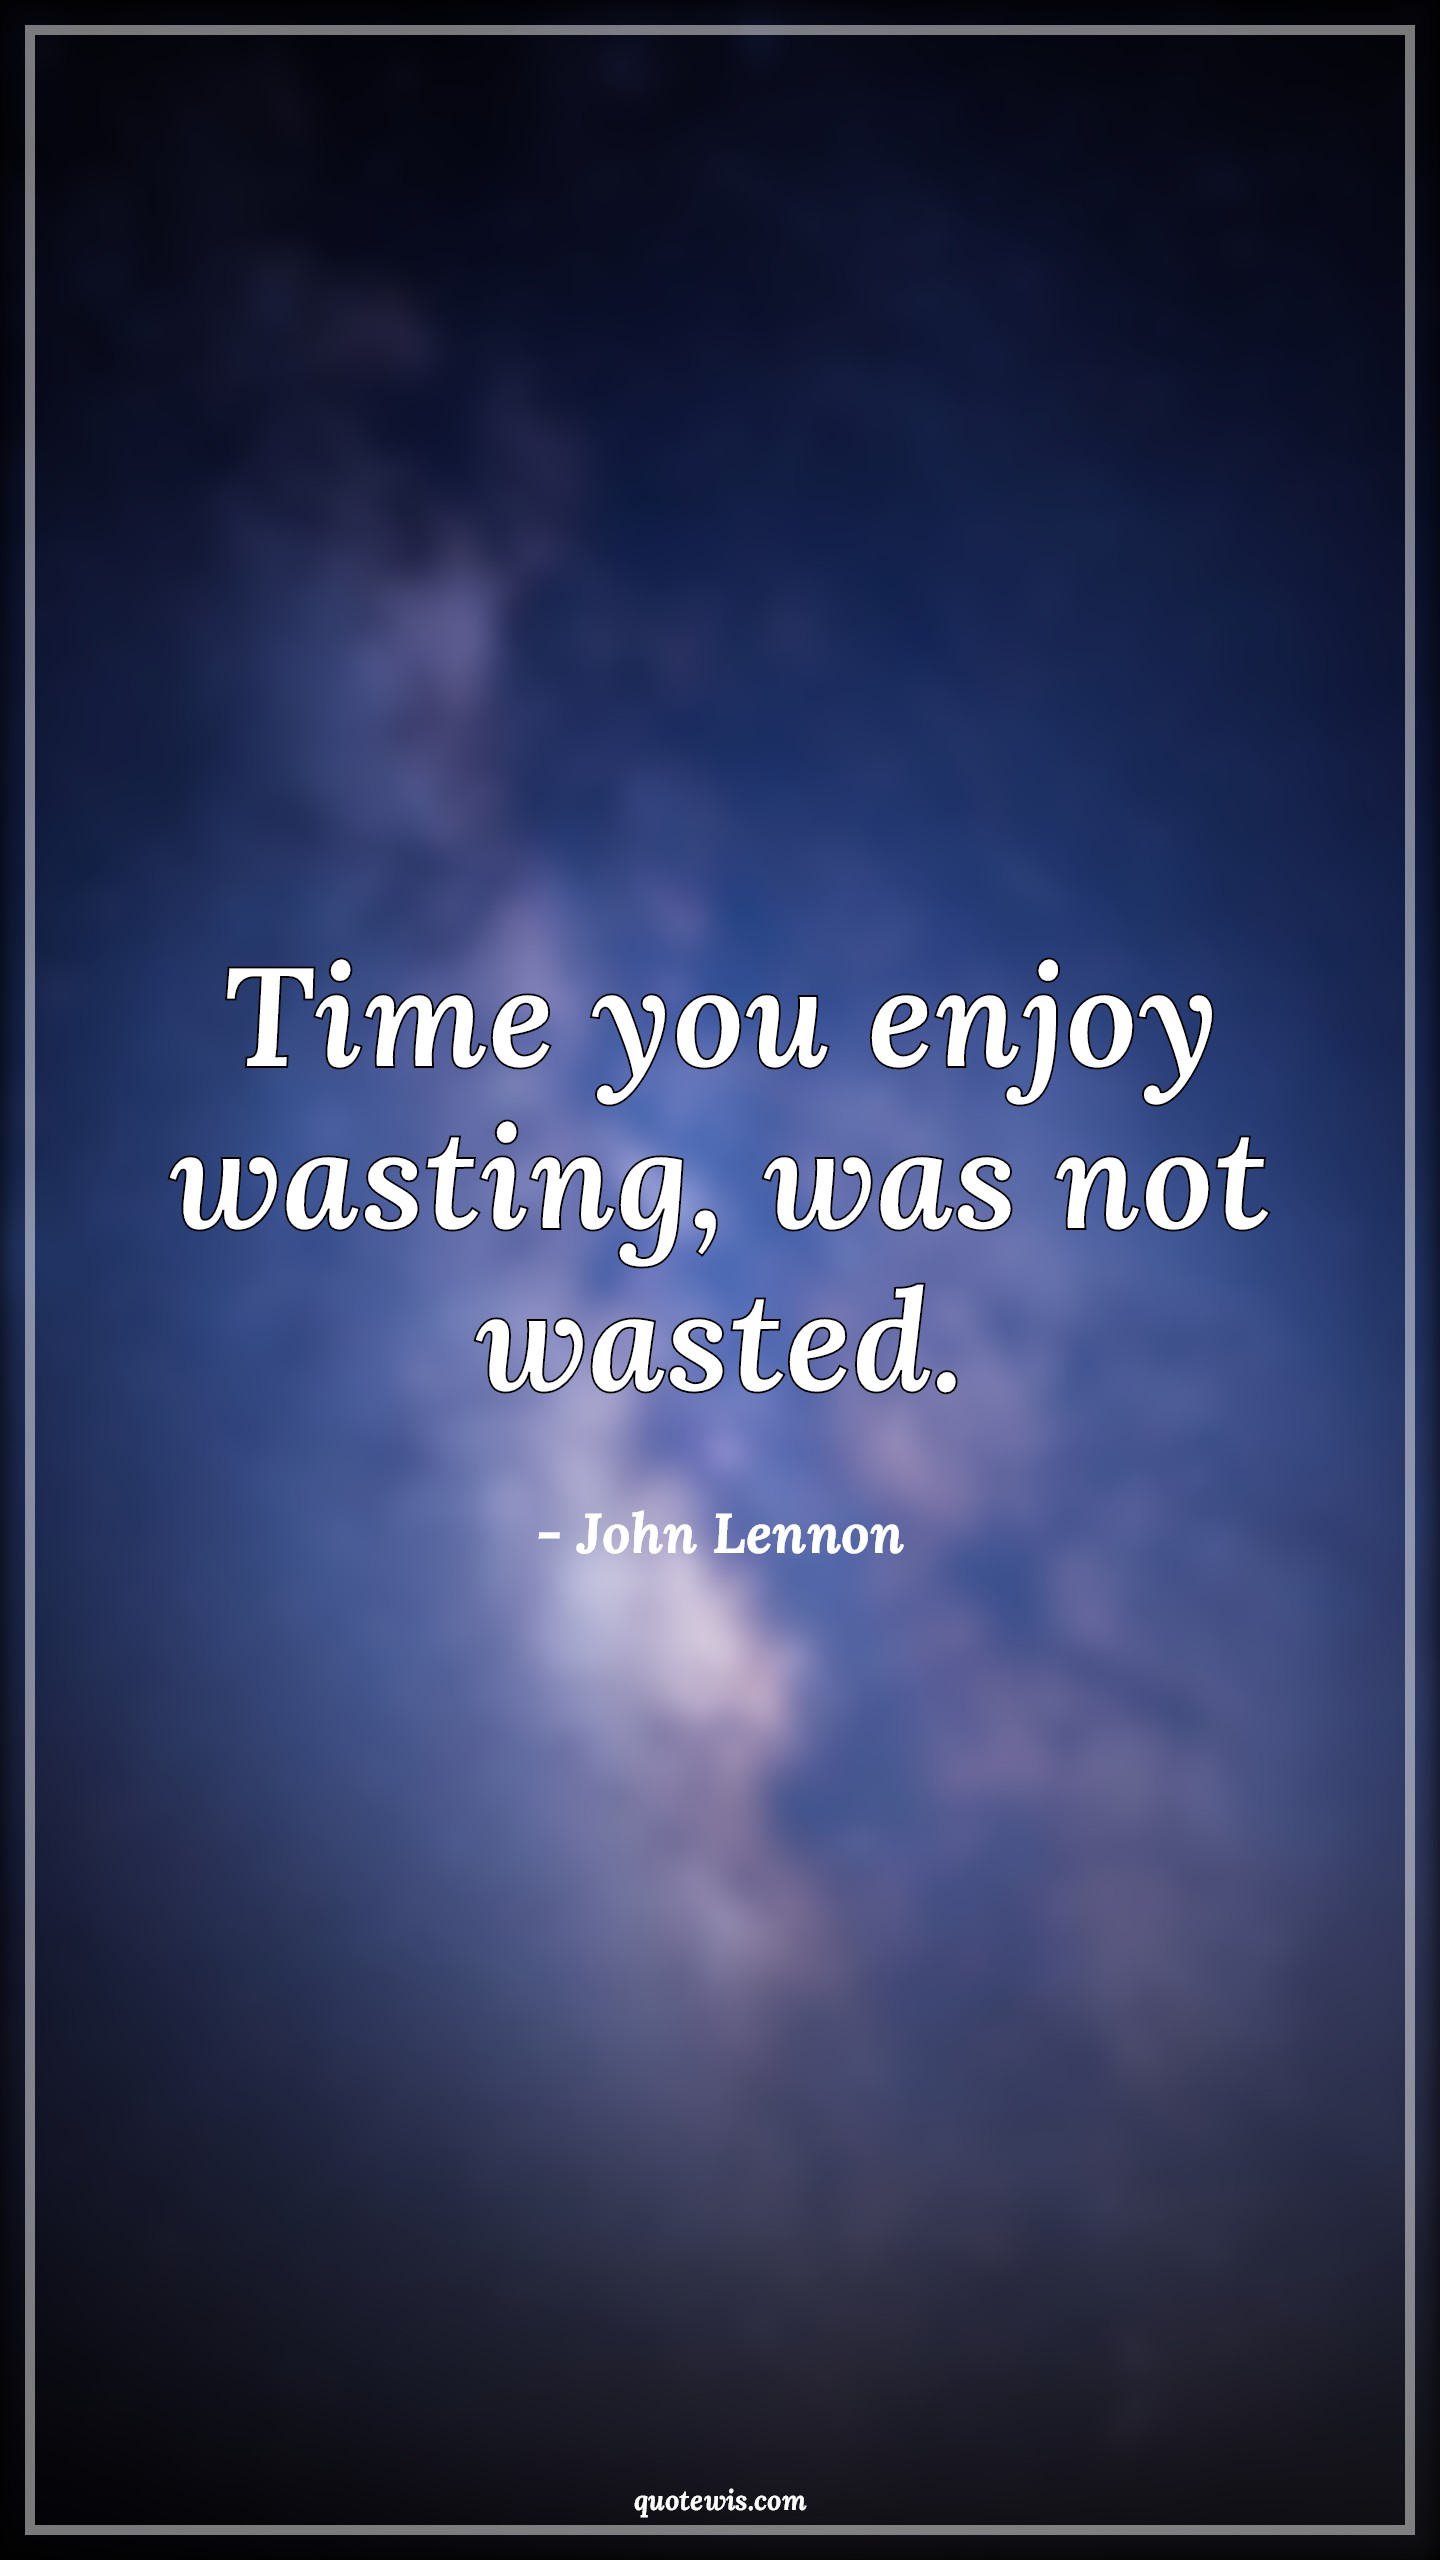 Time you enjoy wasting, was not wasted.